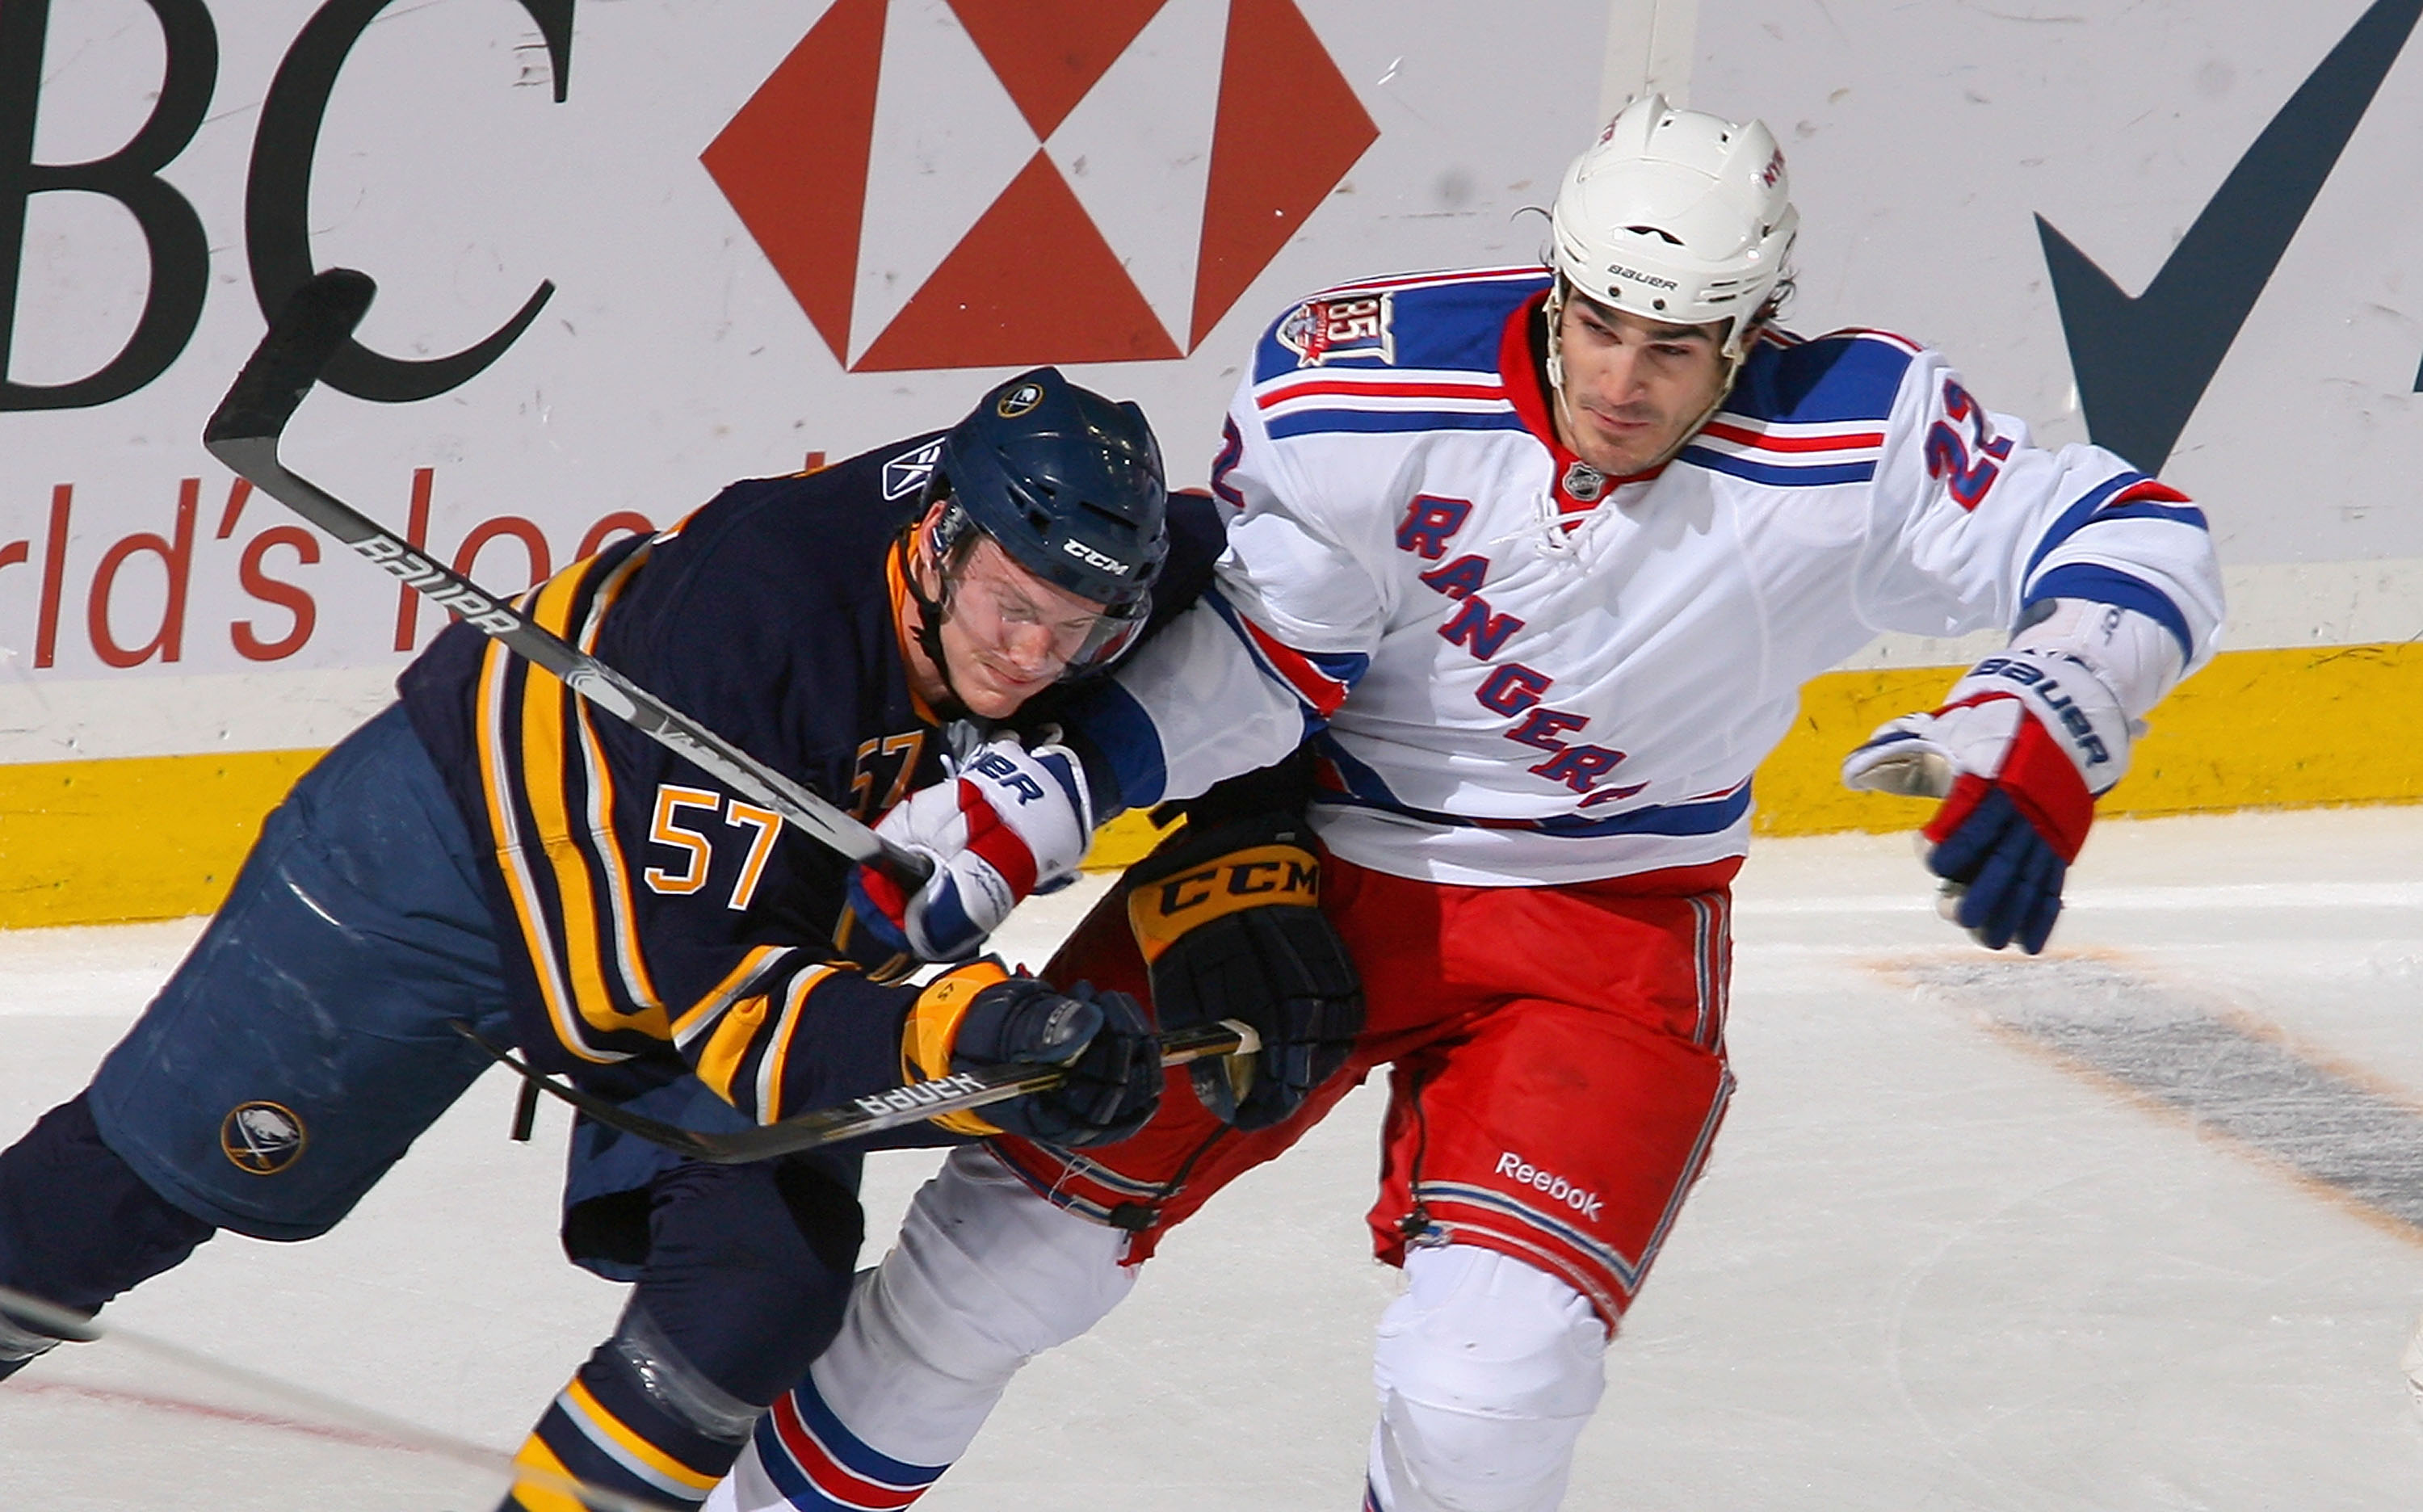 BUFFALO, NY - MARCH 30: Tyler Myers #57 of the Buffalo Sabres skates against Brian Boyle #22 of the New York Rangers at HSBC Arena on March 30, 2011 in Buffalo, New York.  (Photo by Rick Stewart/Getty Images)